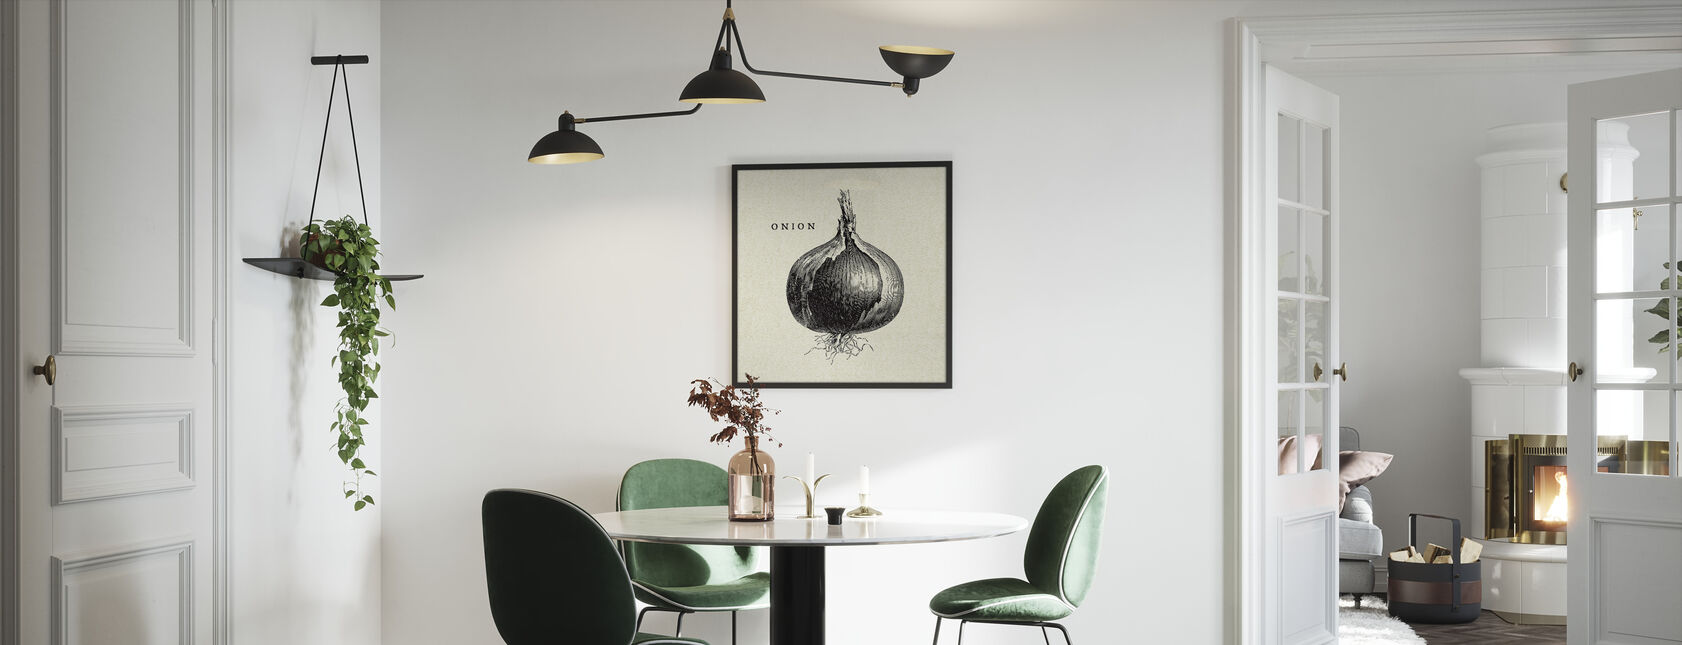 Kitchen Illustration - Onion - Framed print - Kitchen